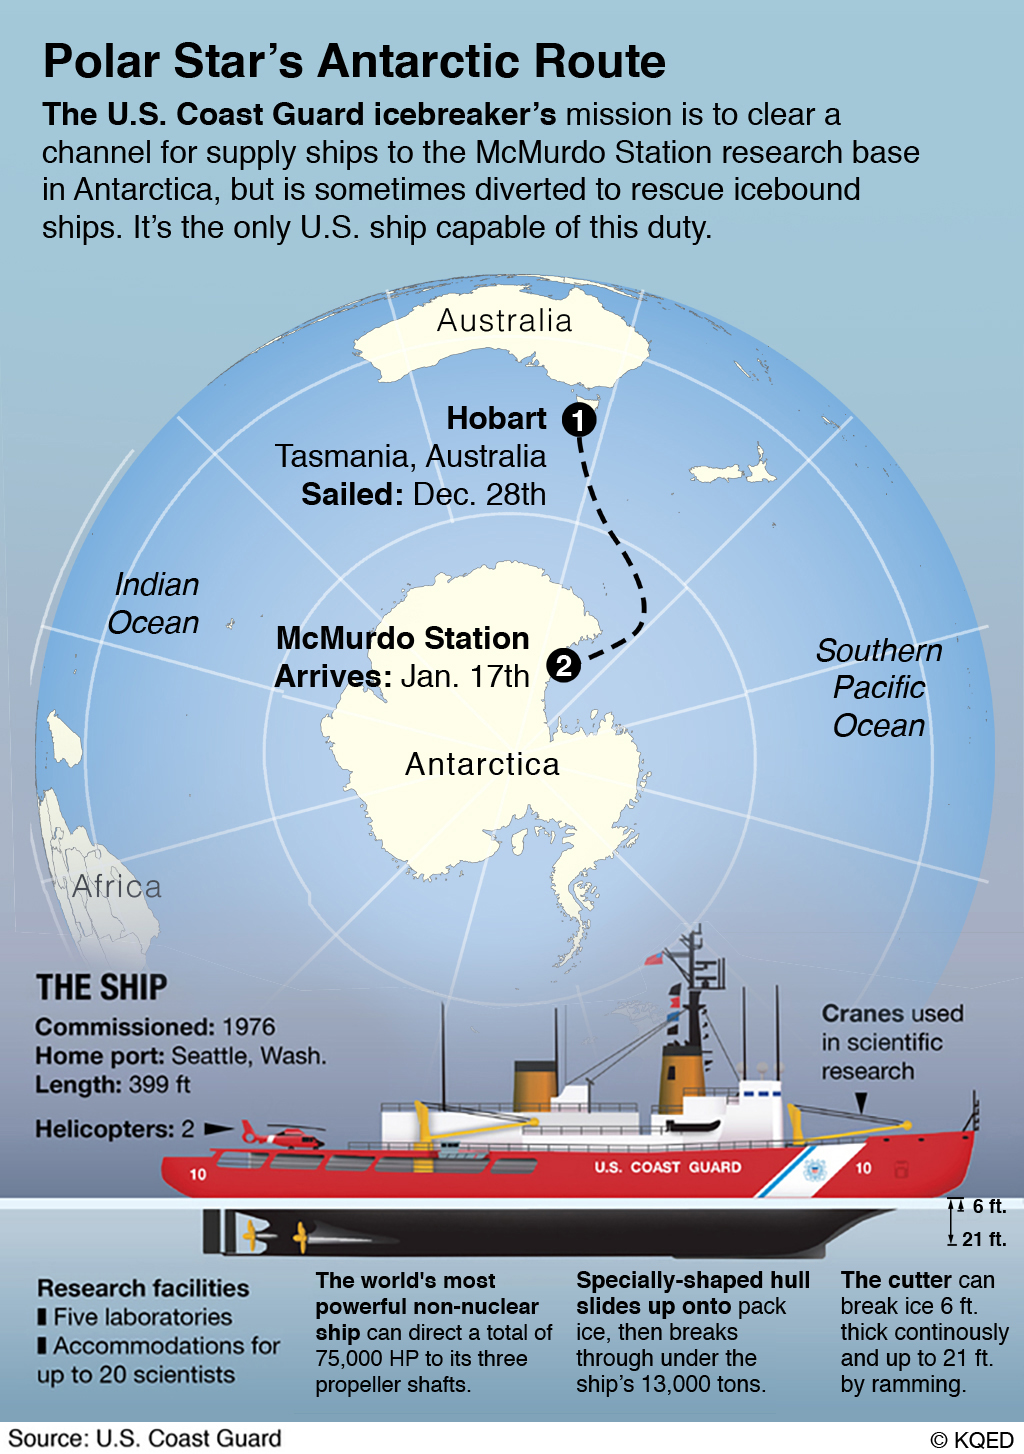 About a week after sailing from Tasmania, the Polar Star entered the ice fields and began breaking a channel into McMurdo Sound.